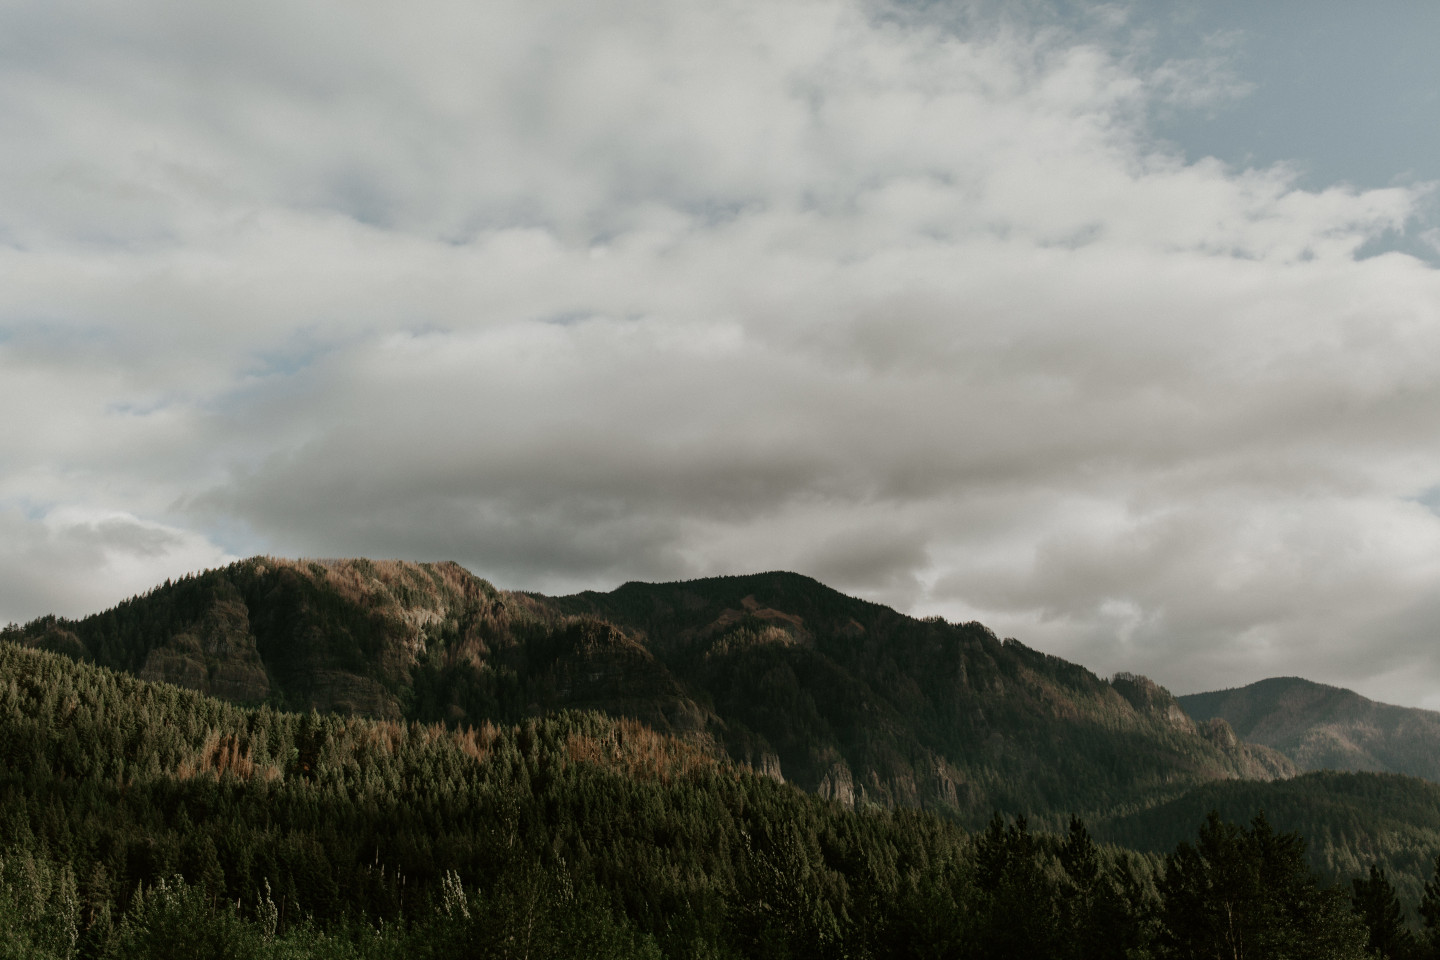 A view of the mountains at the Columbia Gorge, Oregon. Elopement photography in Portland Oregon by Sienna Plus Josh.